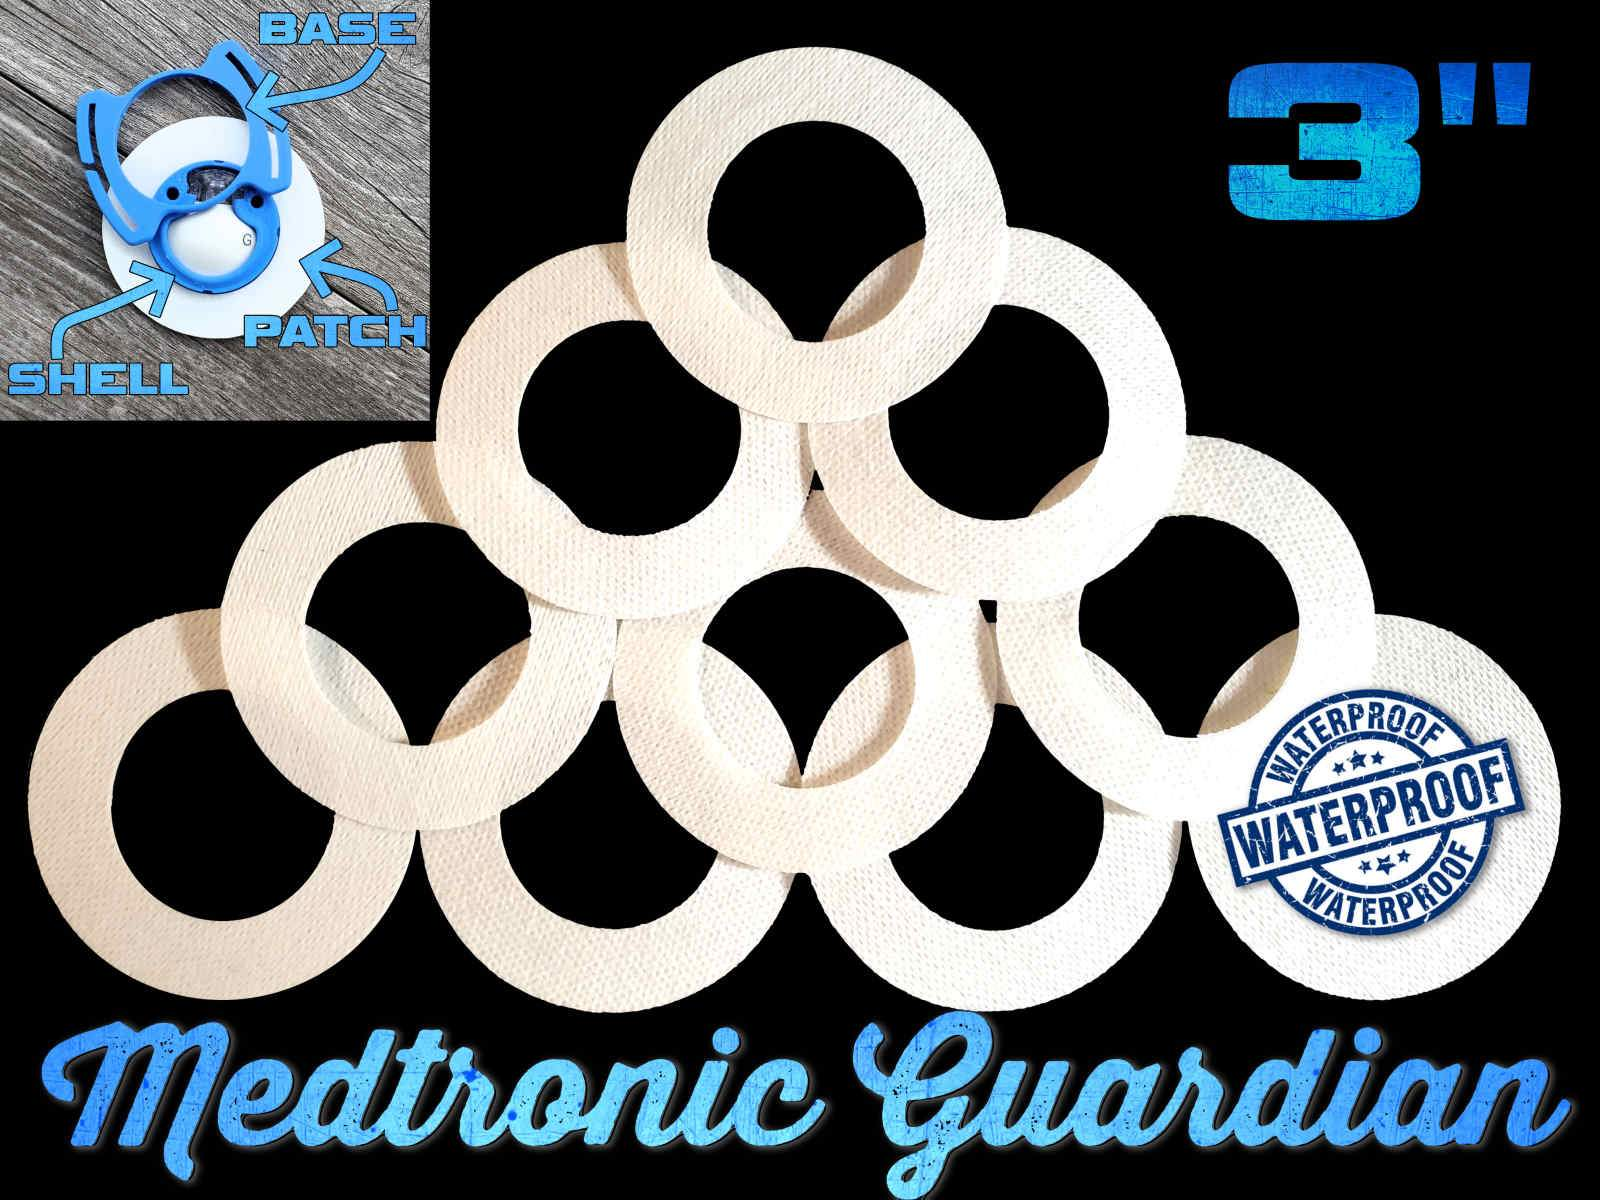 "Medtronic Guardian 3"" Inch Overlay Adhesive Patches - White"